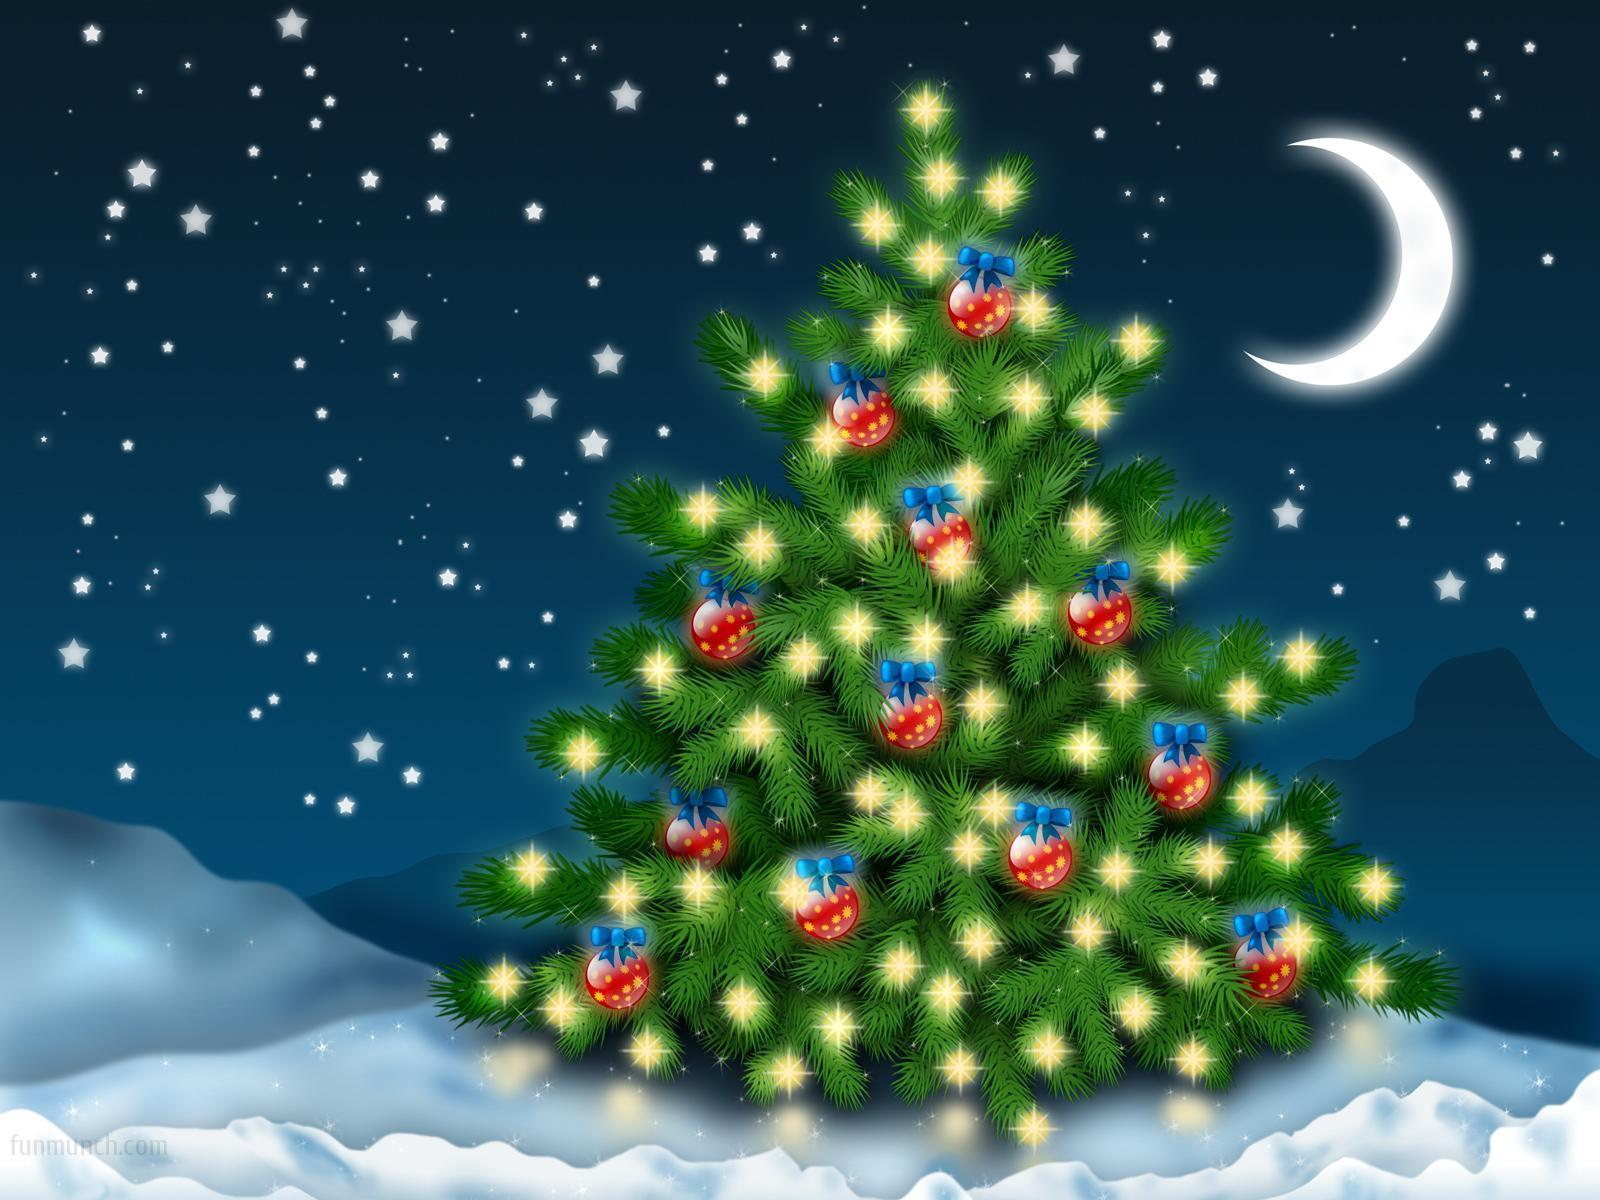 Christmas Lights Wallpaper Best Christmas Lights Desktop Wallpaper 1600x1200